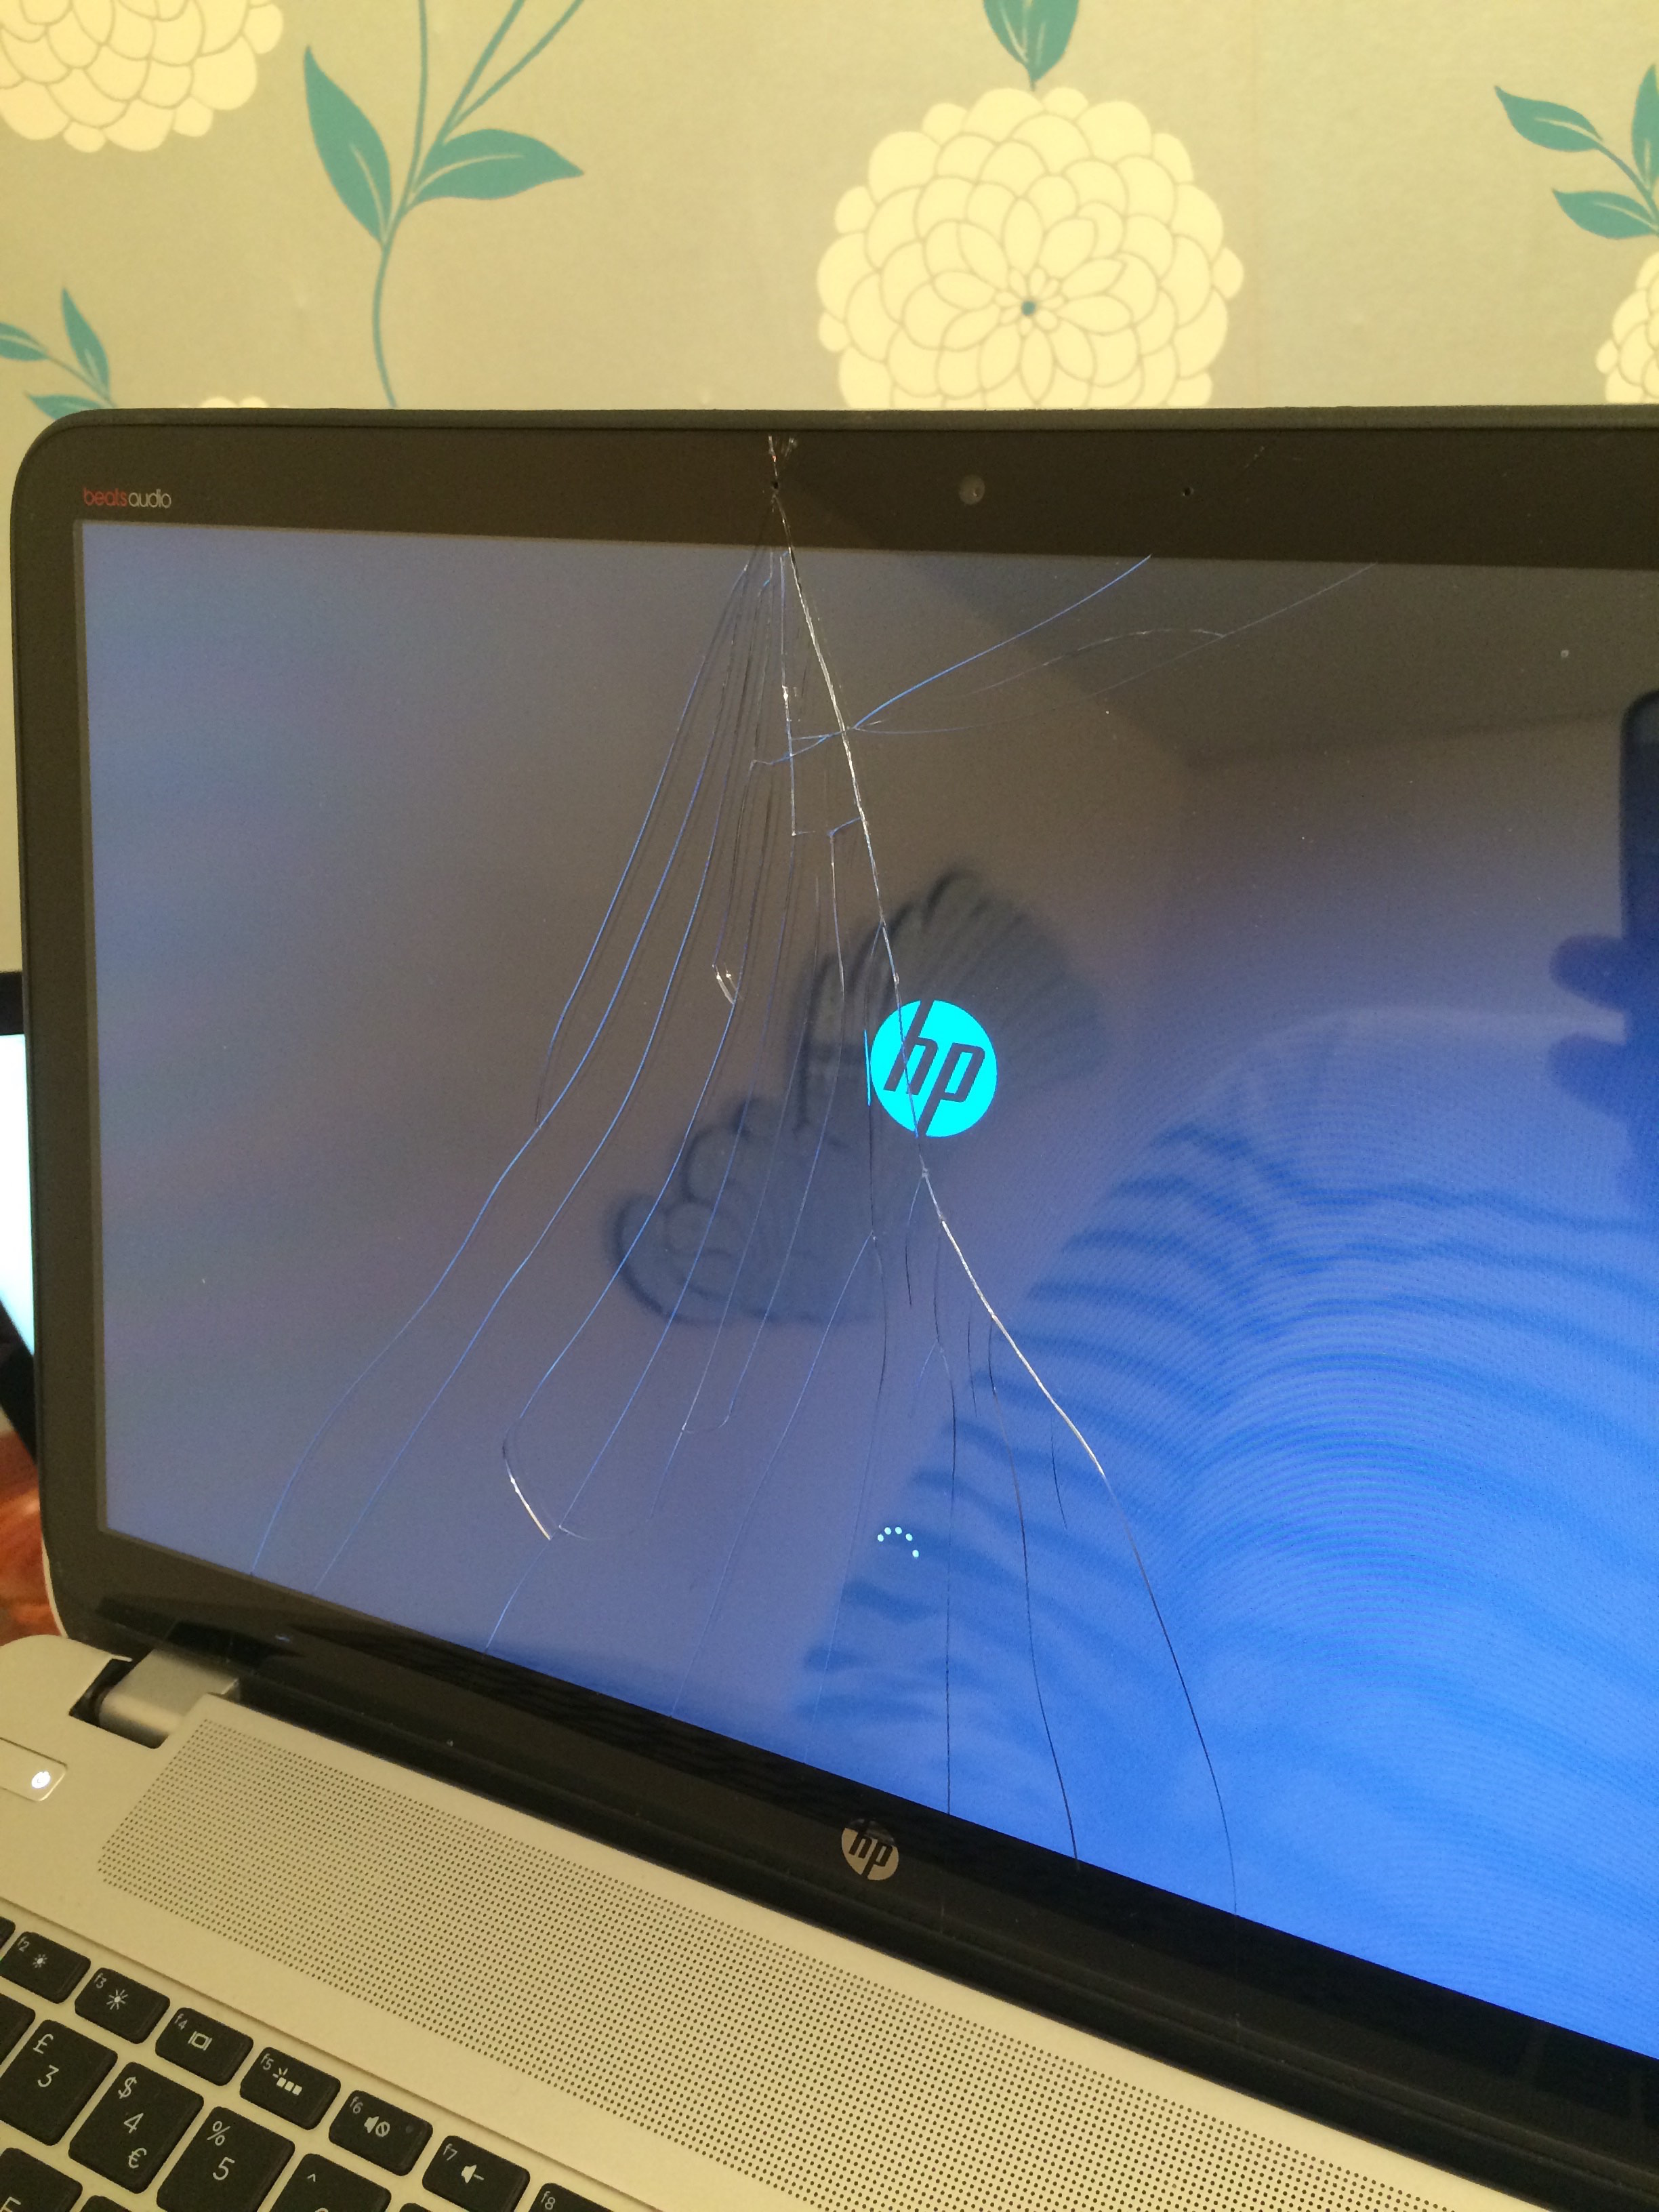 Screen cracked, touch screen not working, HP ENVY TouchSmart